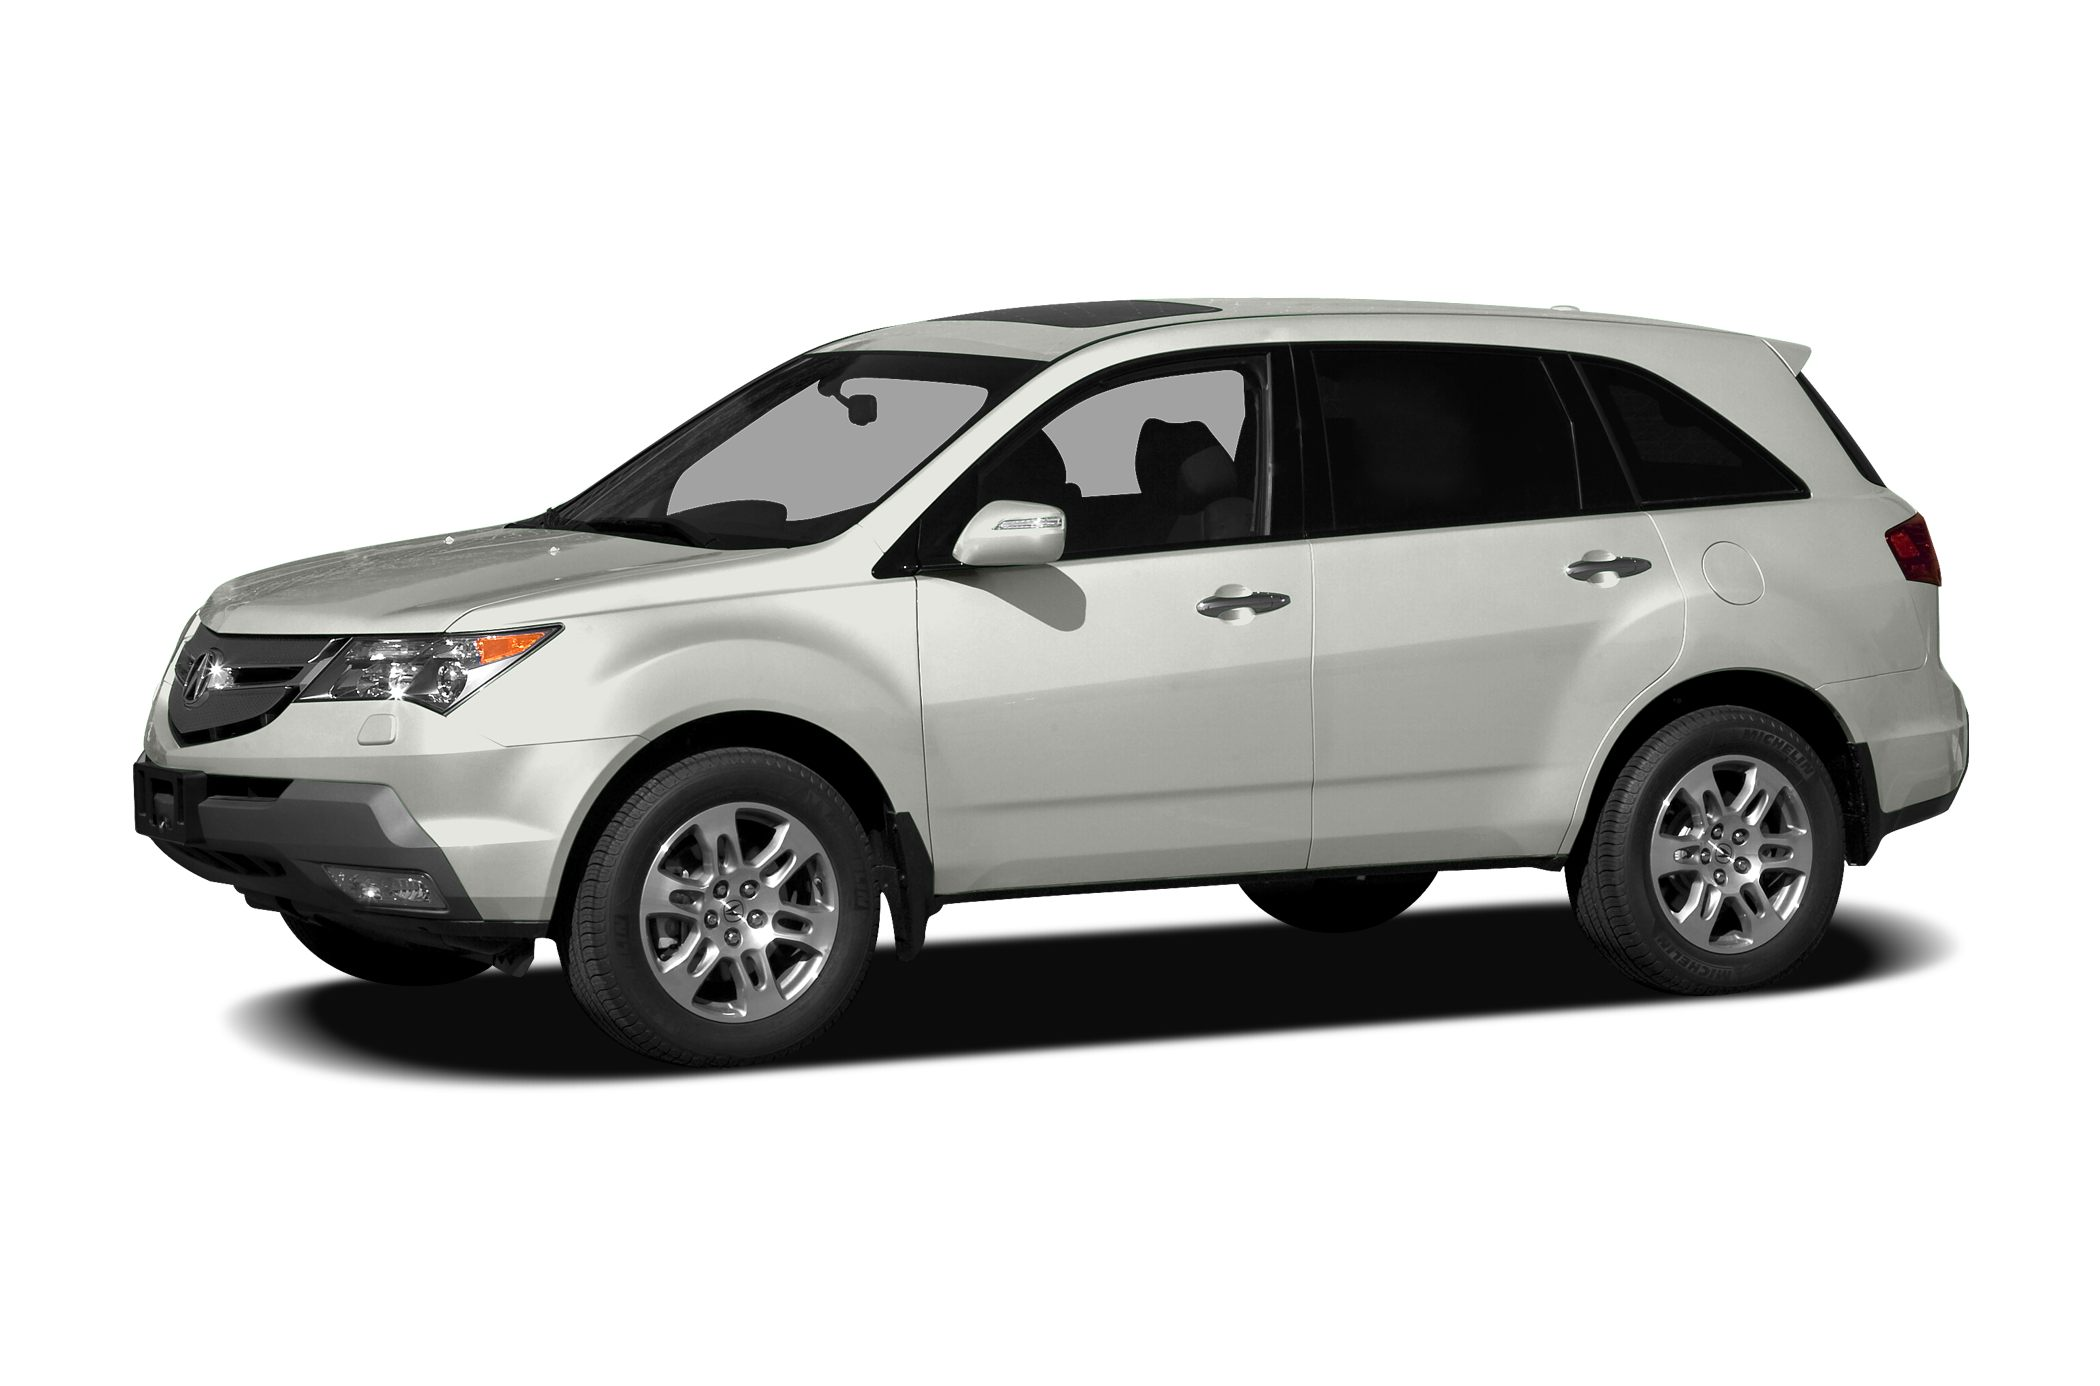 2008 Acura MDX SUV for sale in Bridgewater for $14,990 with 108,674 miles